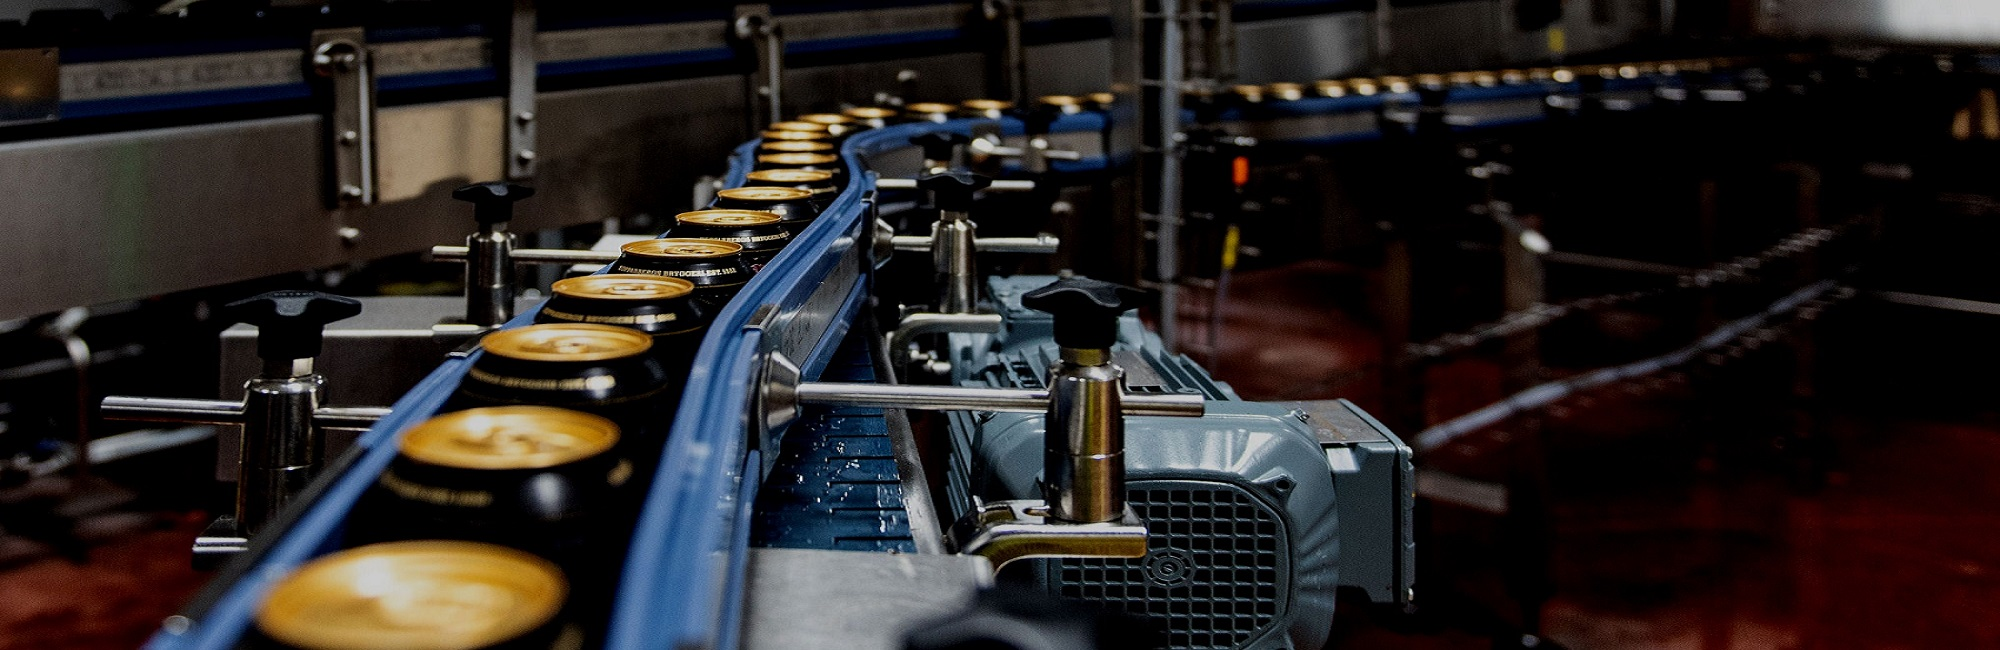 Canning Line - 2000x650px